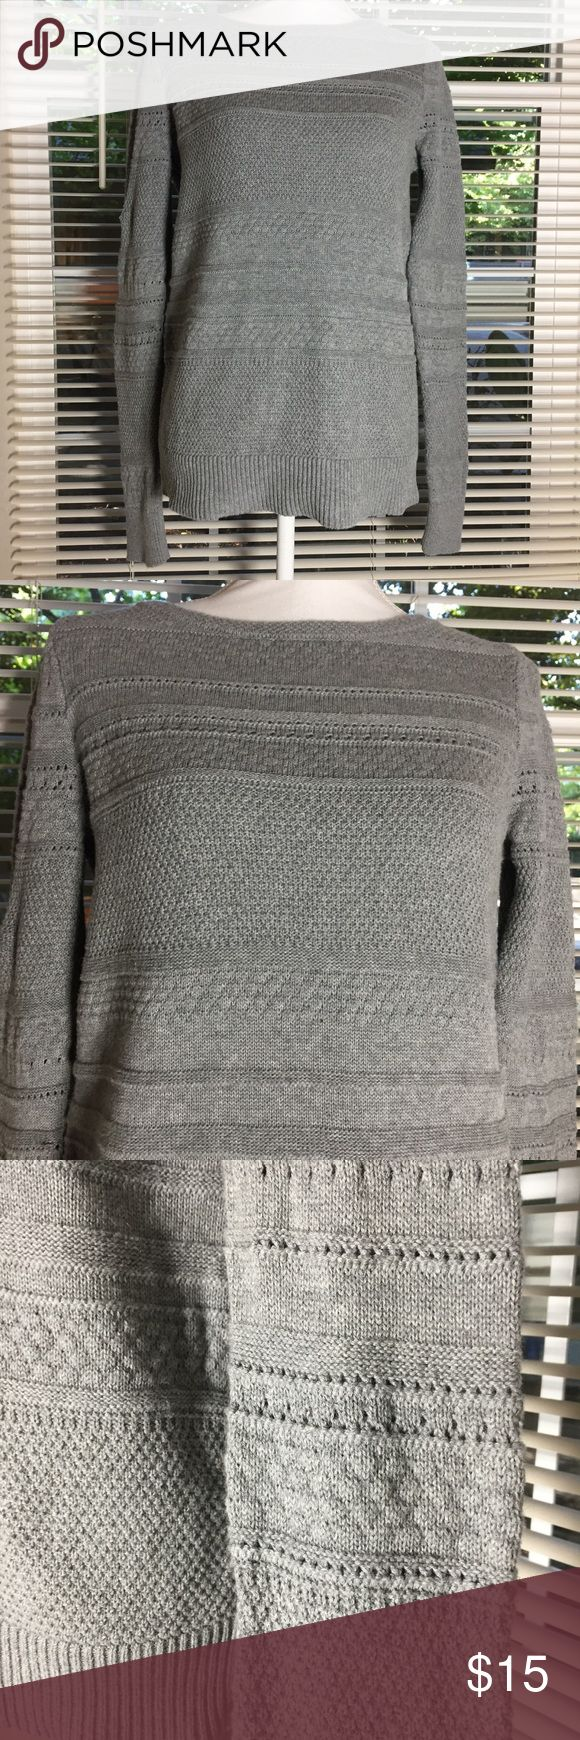 "Loft Women's Crewneck Sweater Size small. Gray knit sweater. Machine washable cotton. Very good condition. Bust measures 41"". Length is 25"". (9) LOFT Sweaters Crew & Scoop Necks"